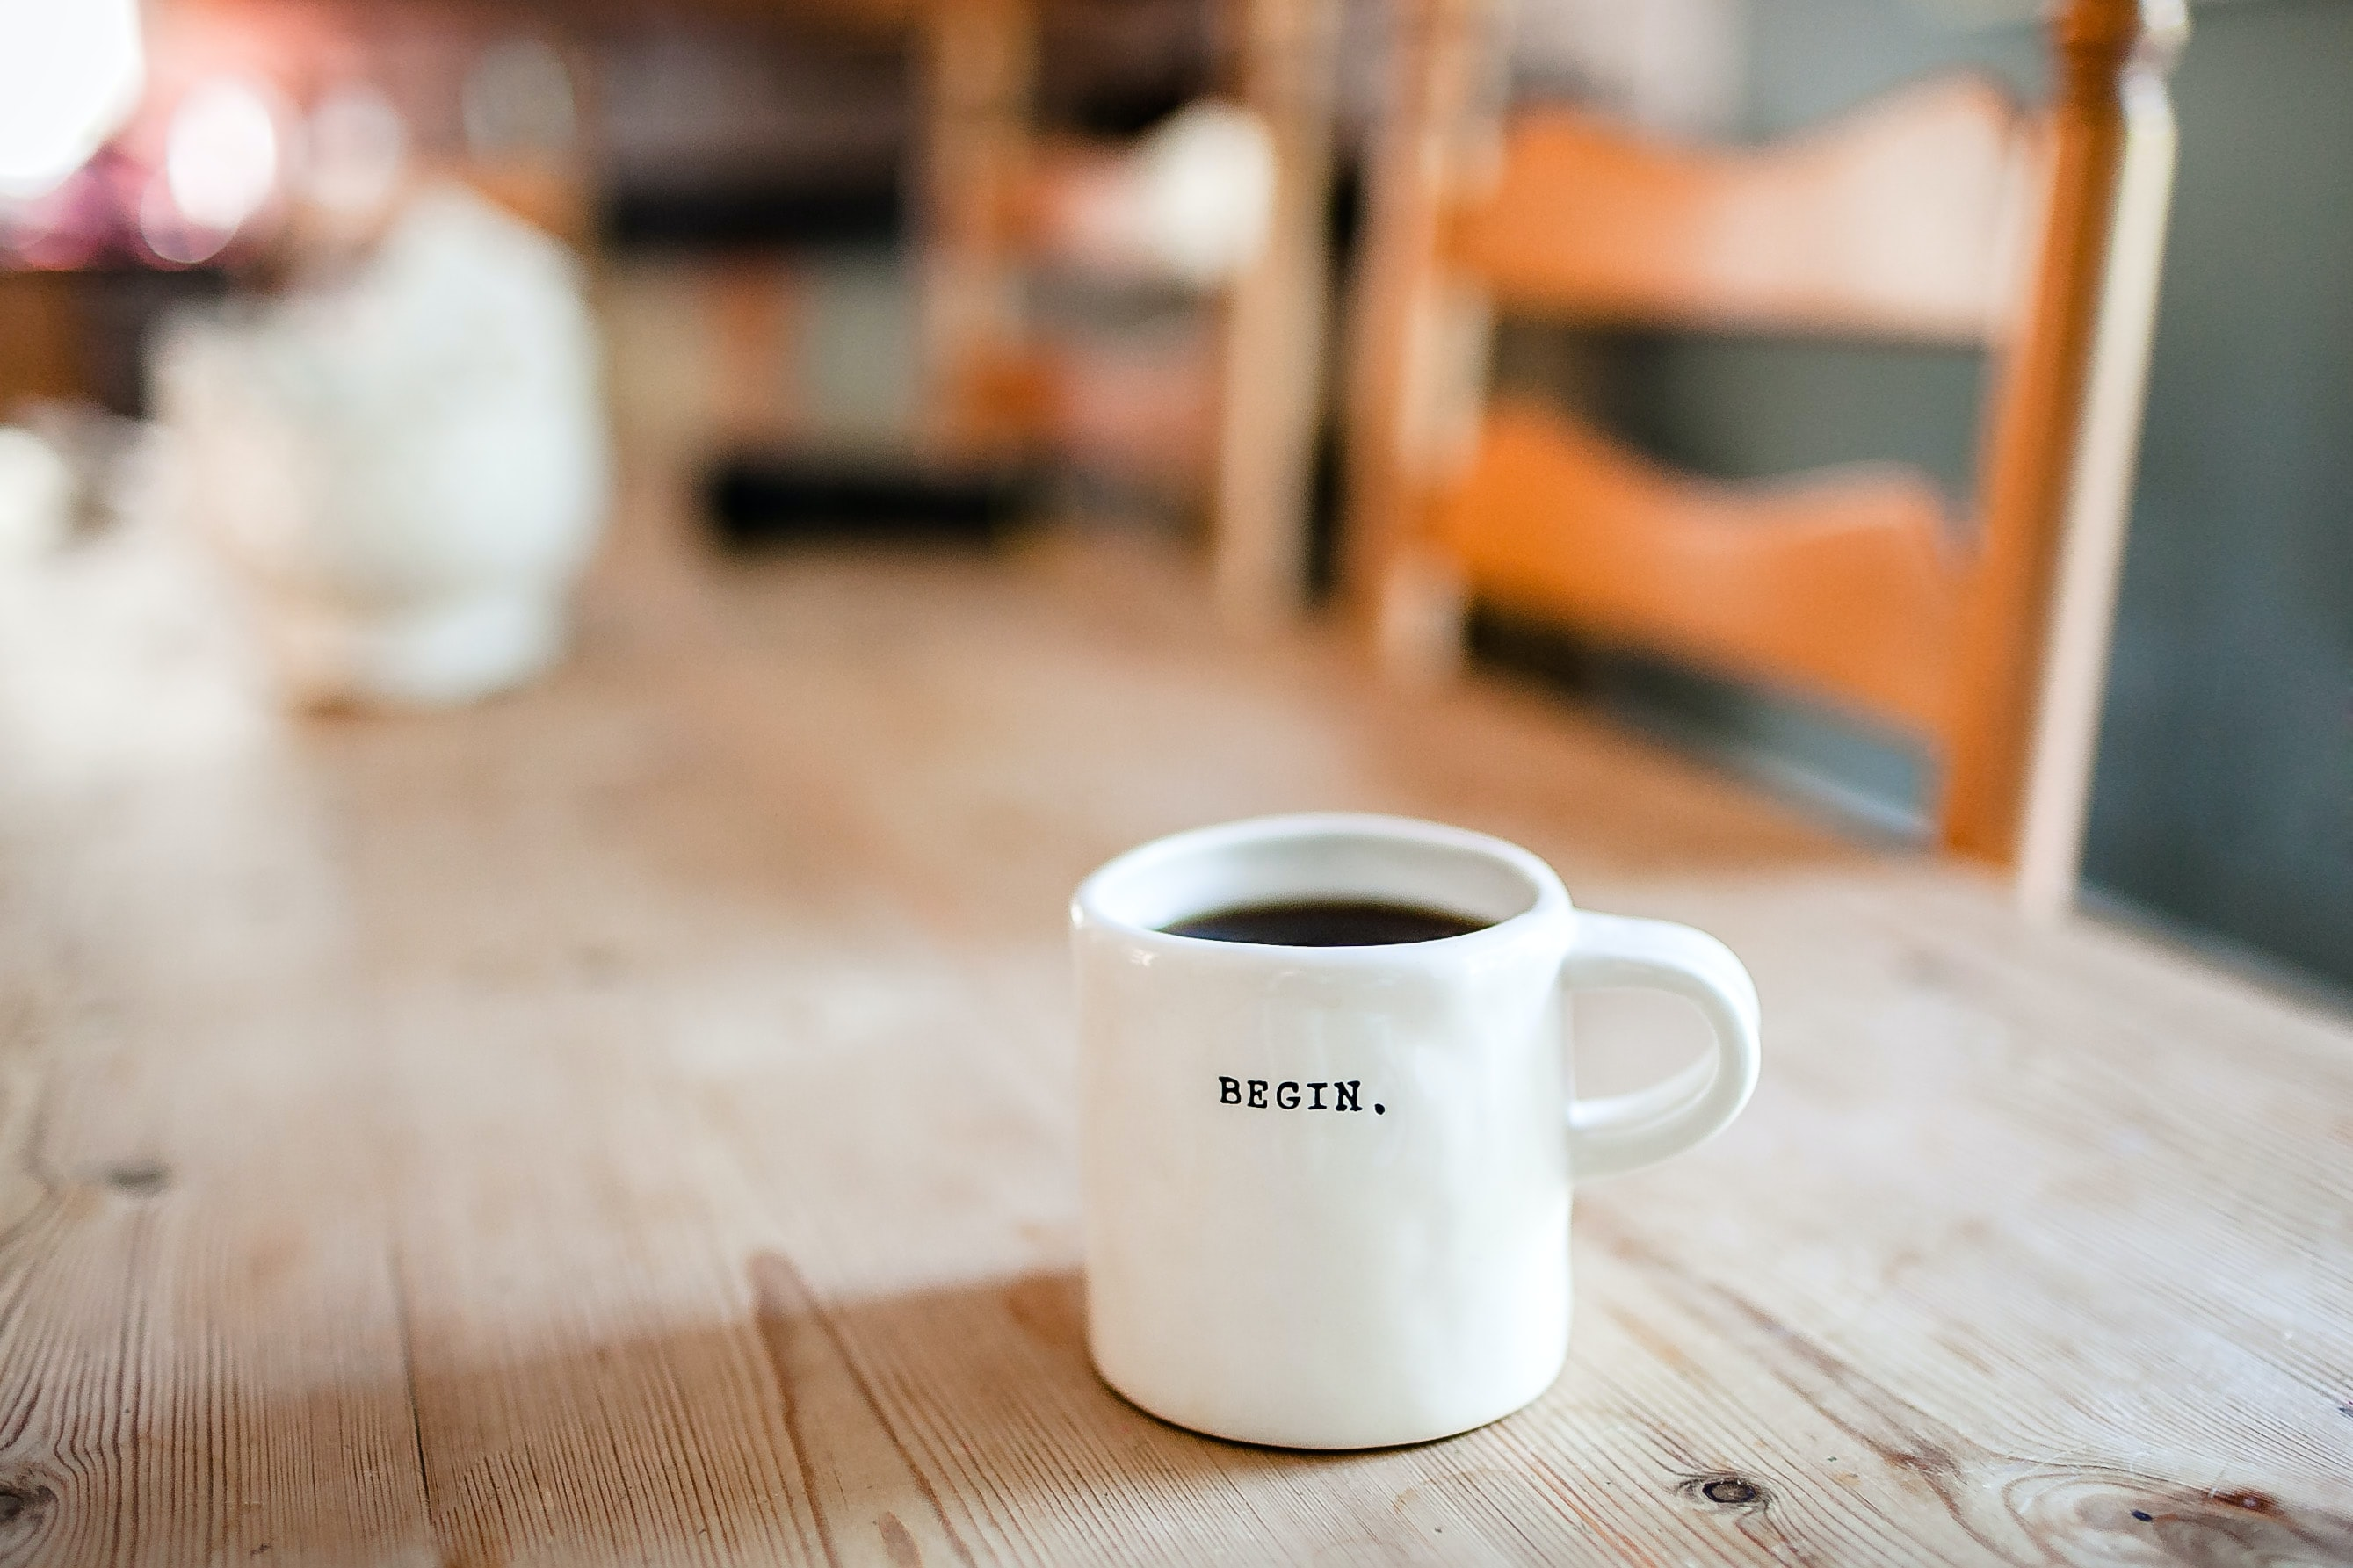 """A white coffee mug with """"begin"""" written on it on a wooden table"""